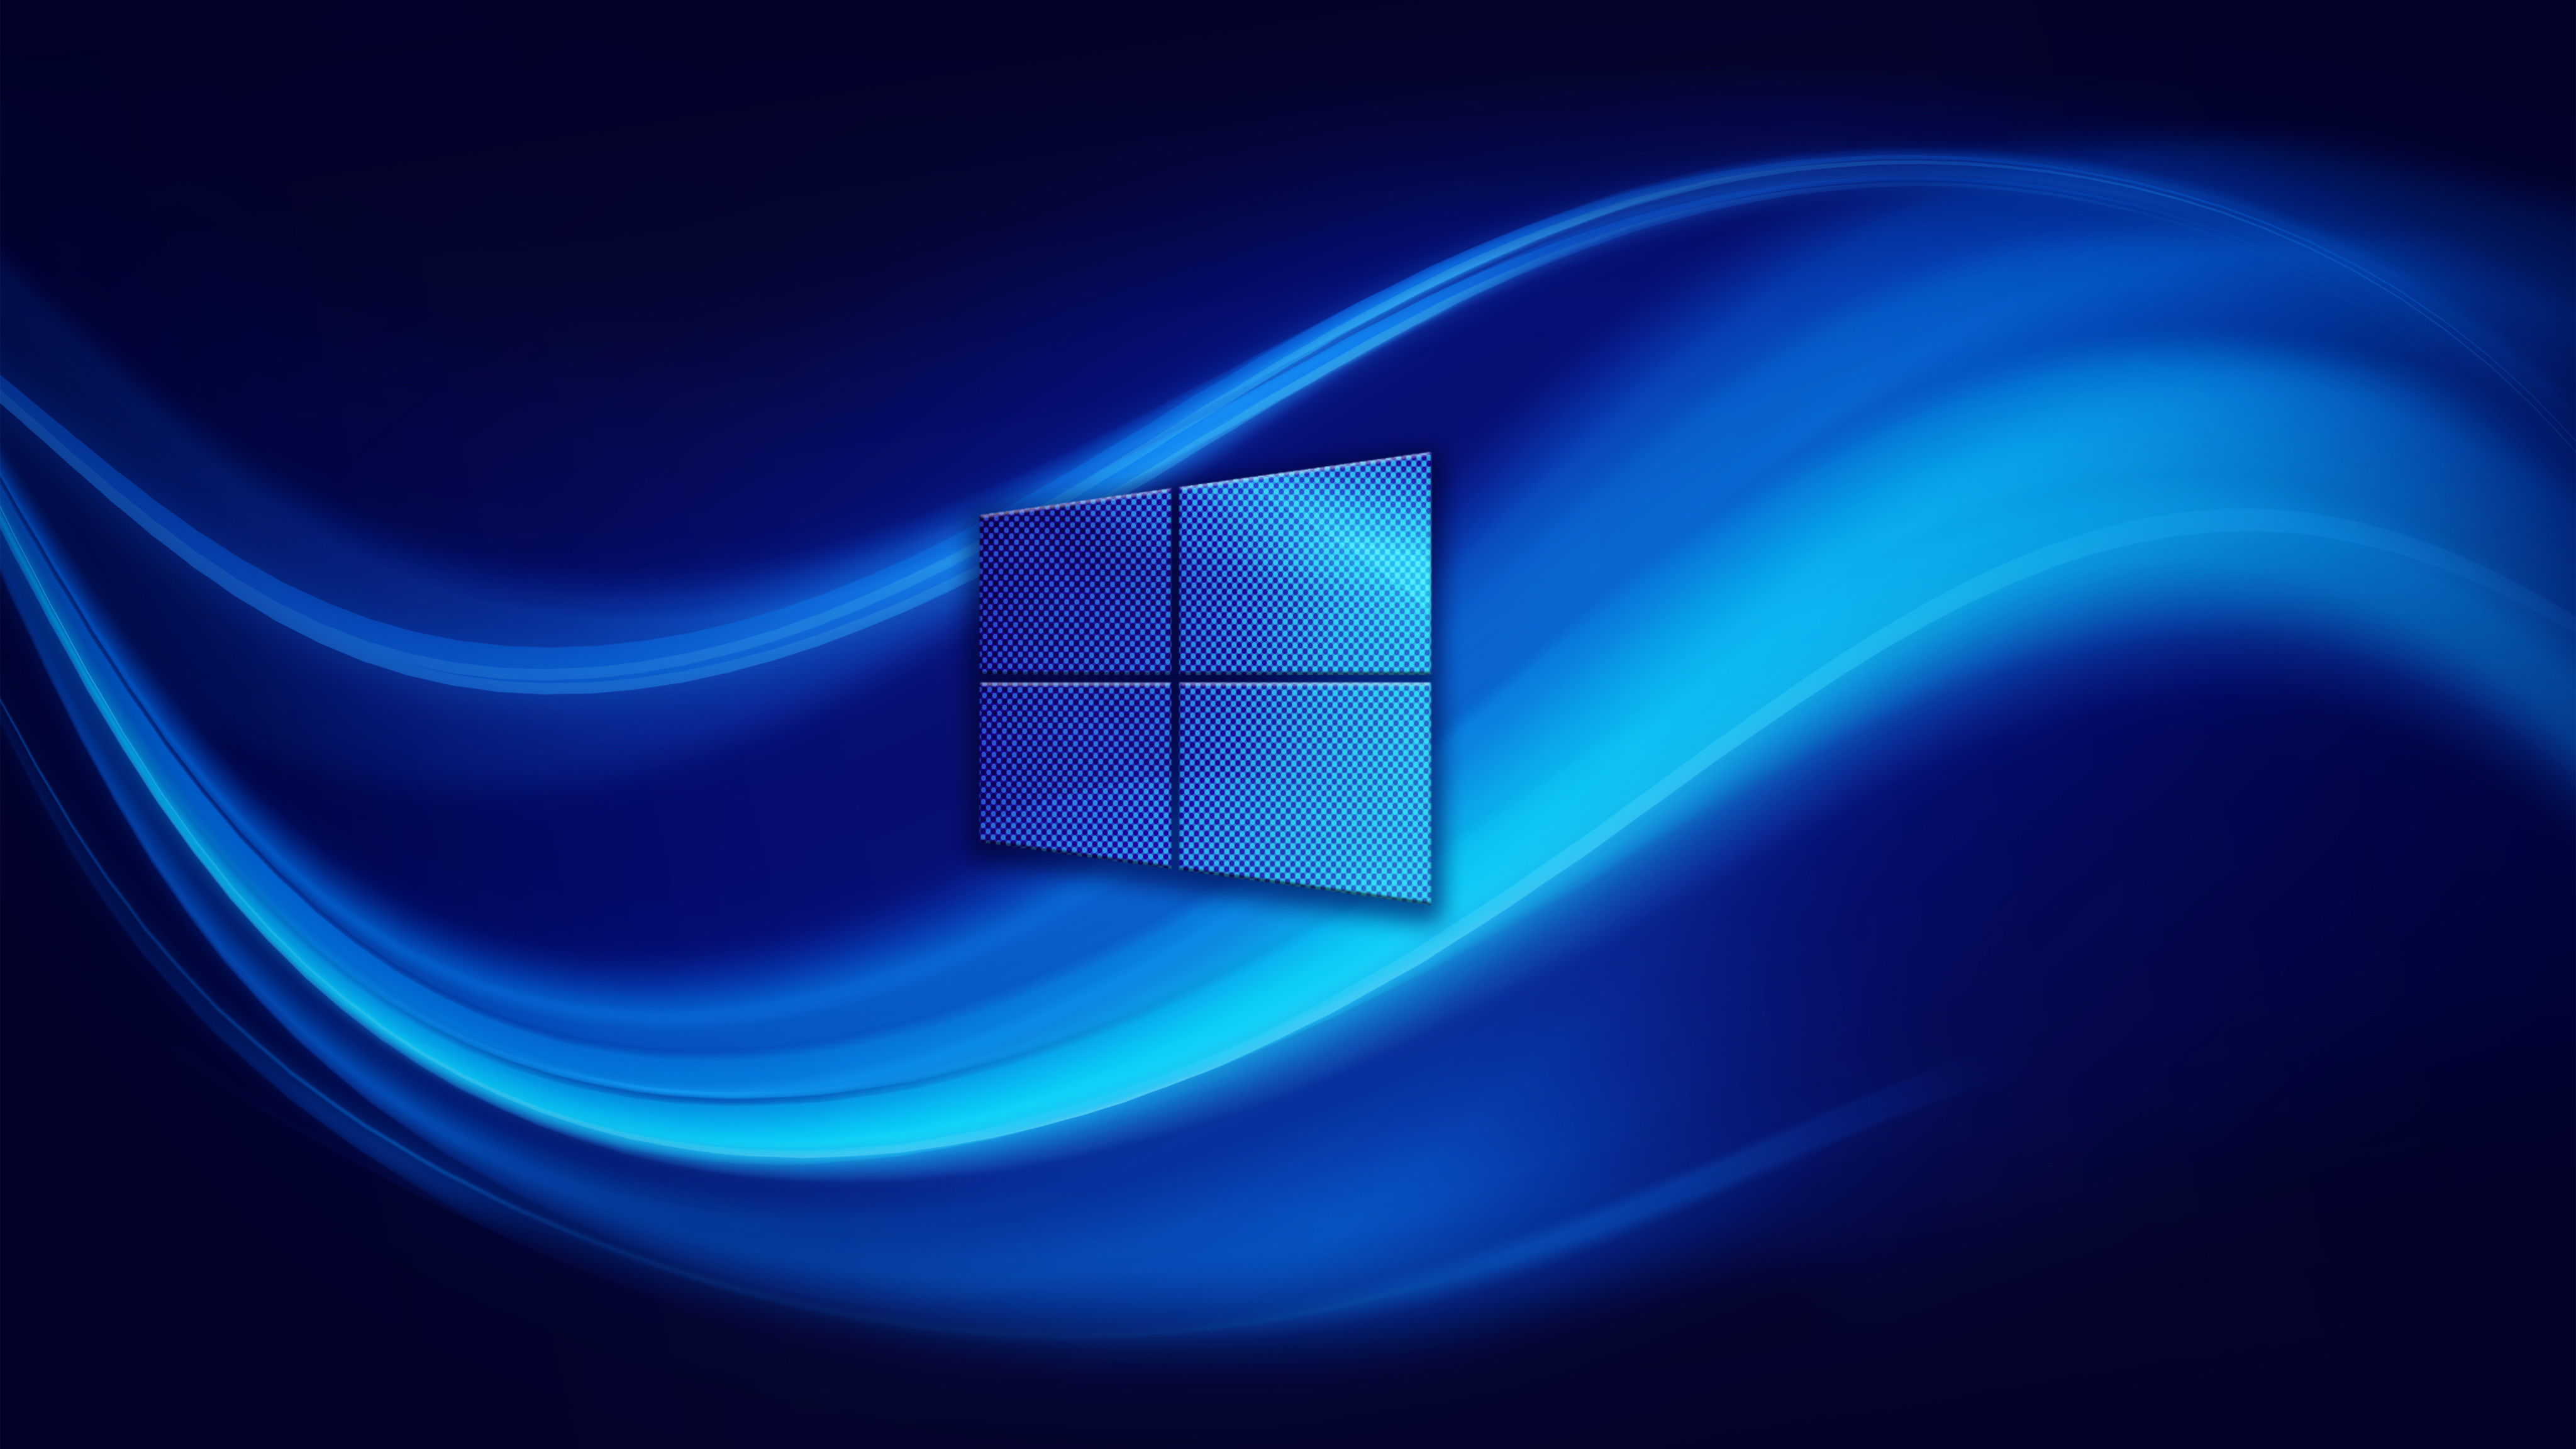 Windows 10 Wallpaper Ten Wave Windows 10 Wallpaper Best